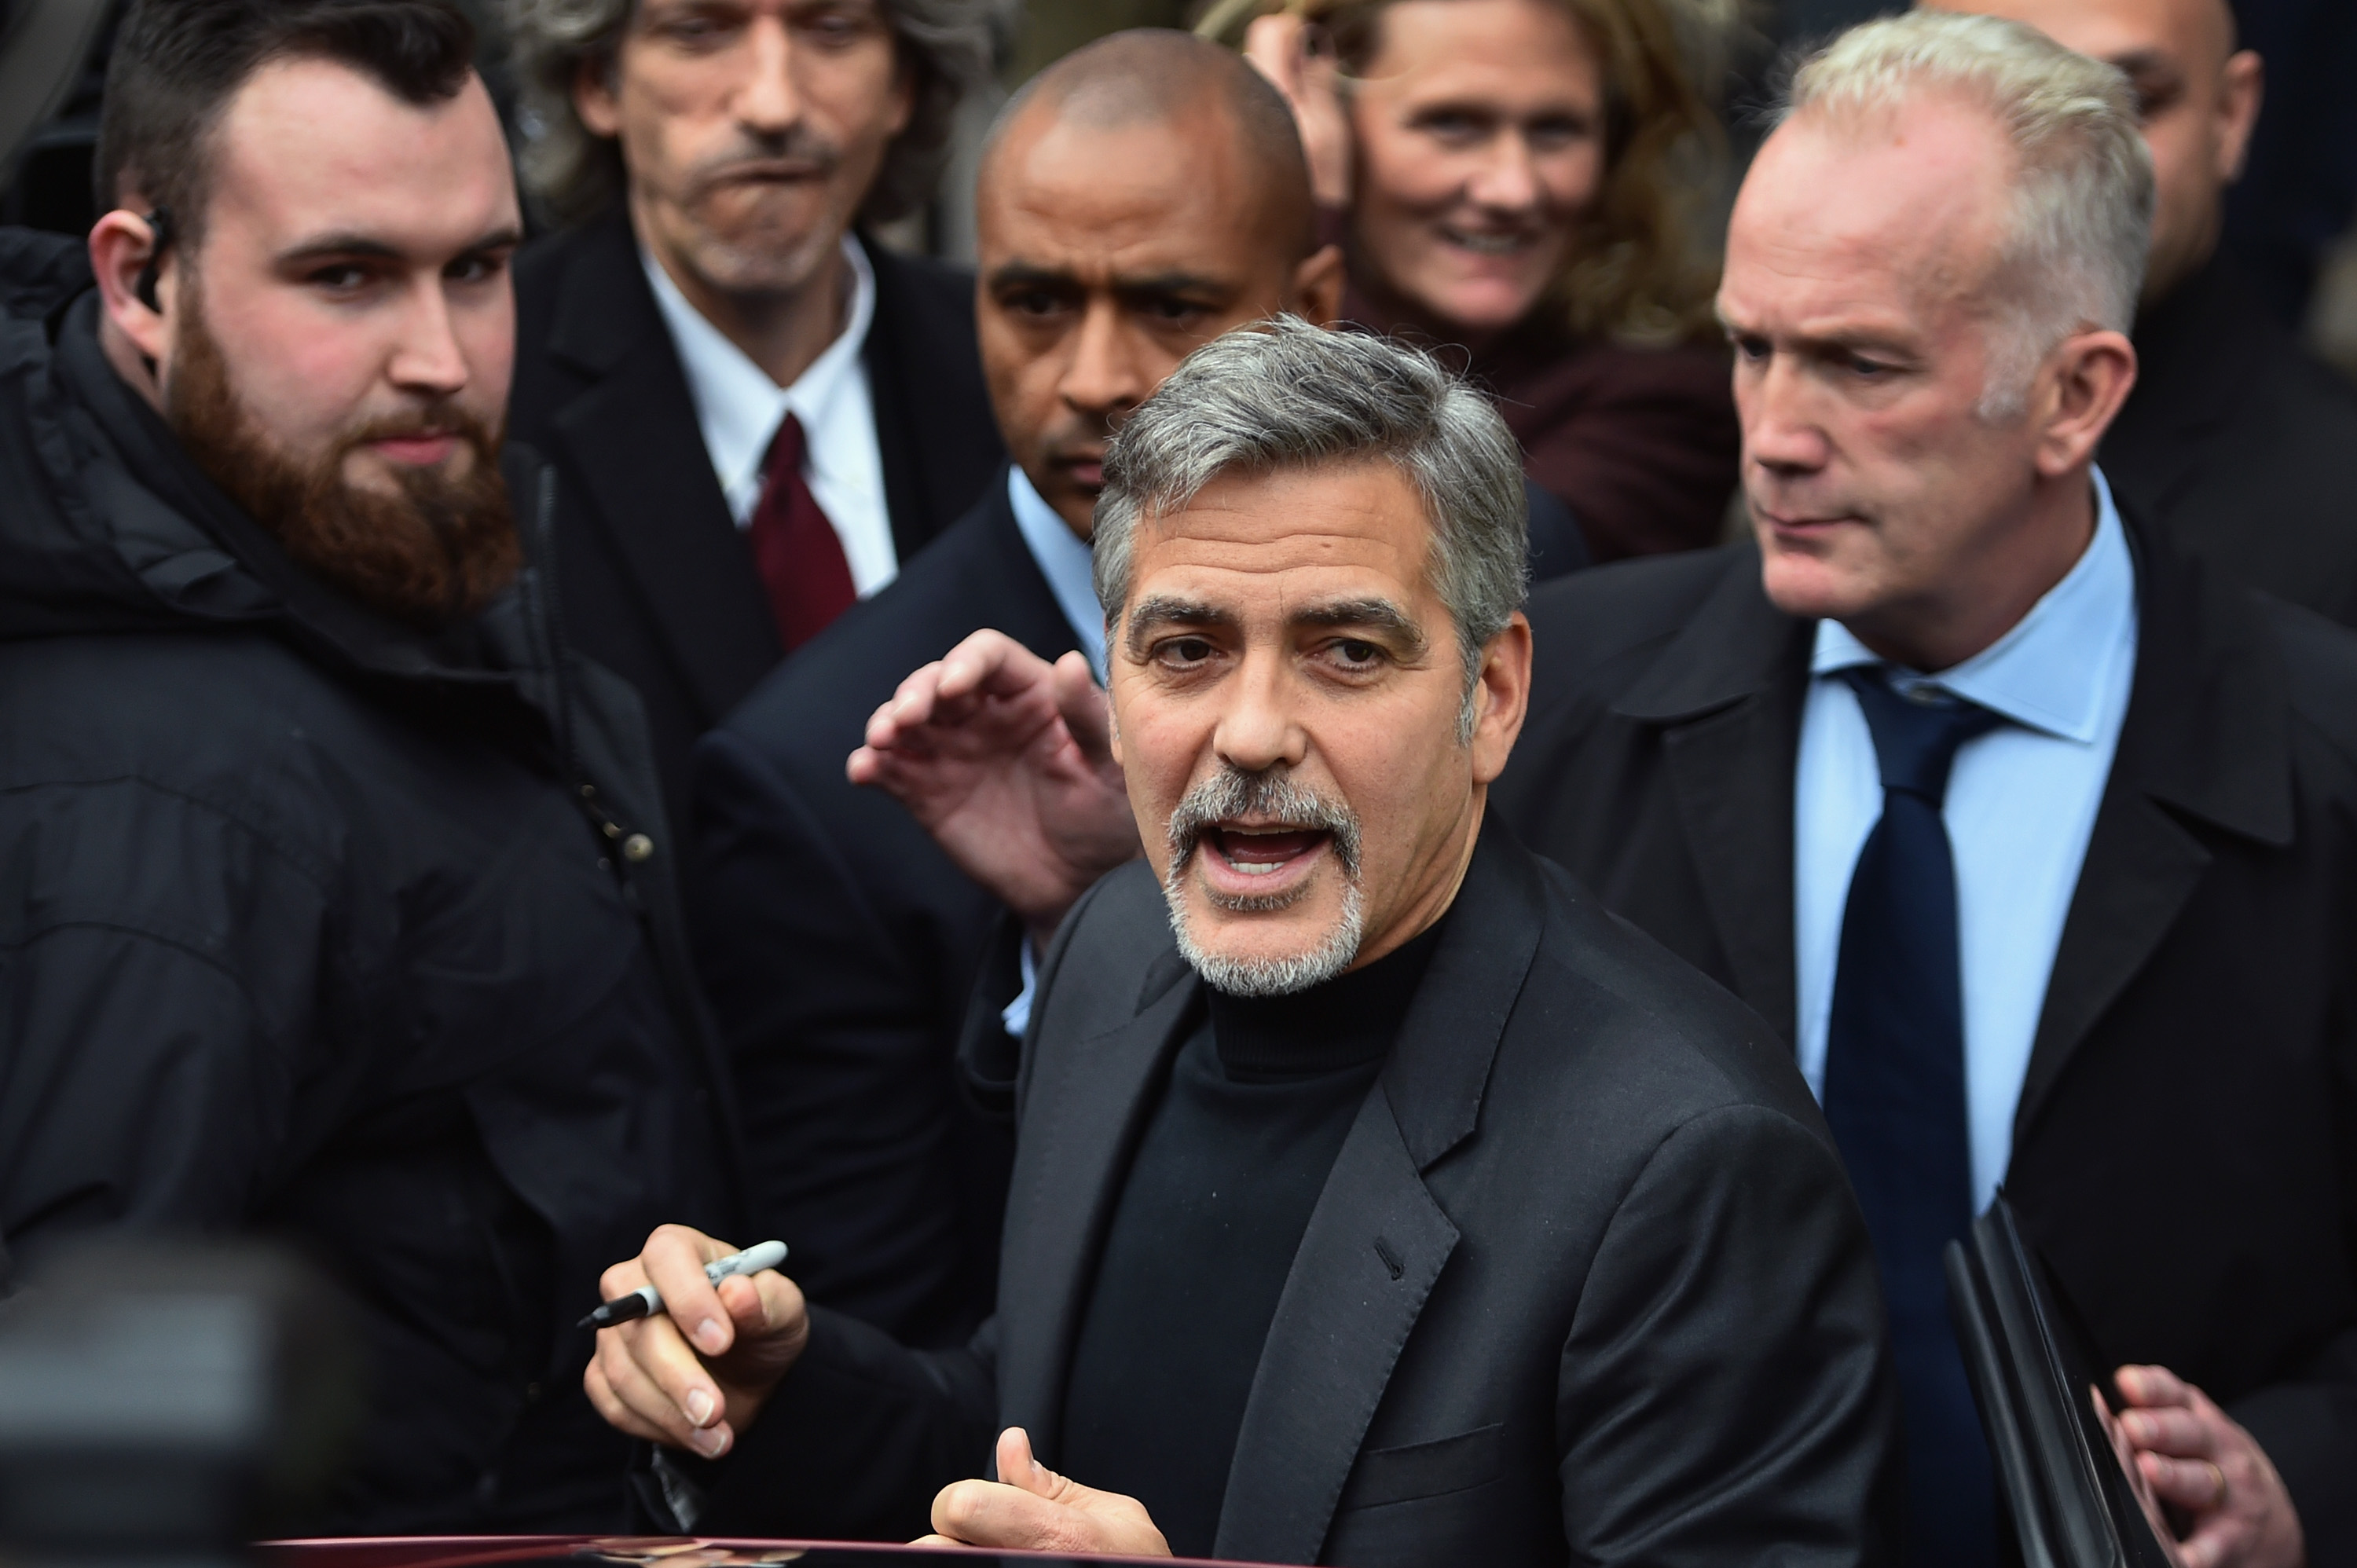 Hollywood actor George Clooney reacts with members of the public as he leaves Tiger Lily restaurant on Nov. 12, 2015 in Edinburgh, Scotland.